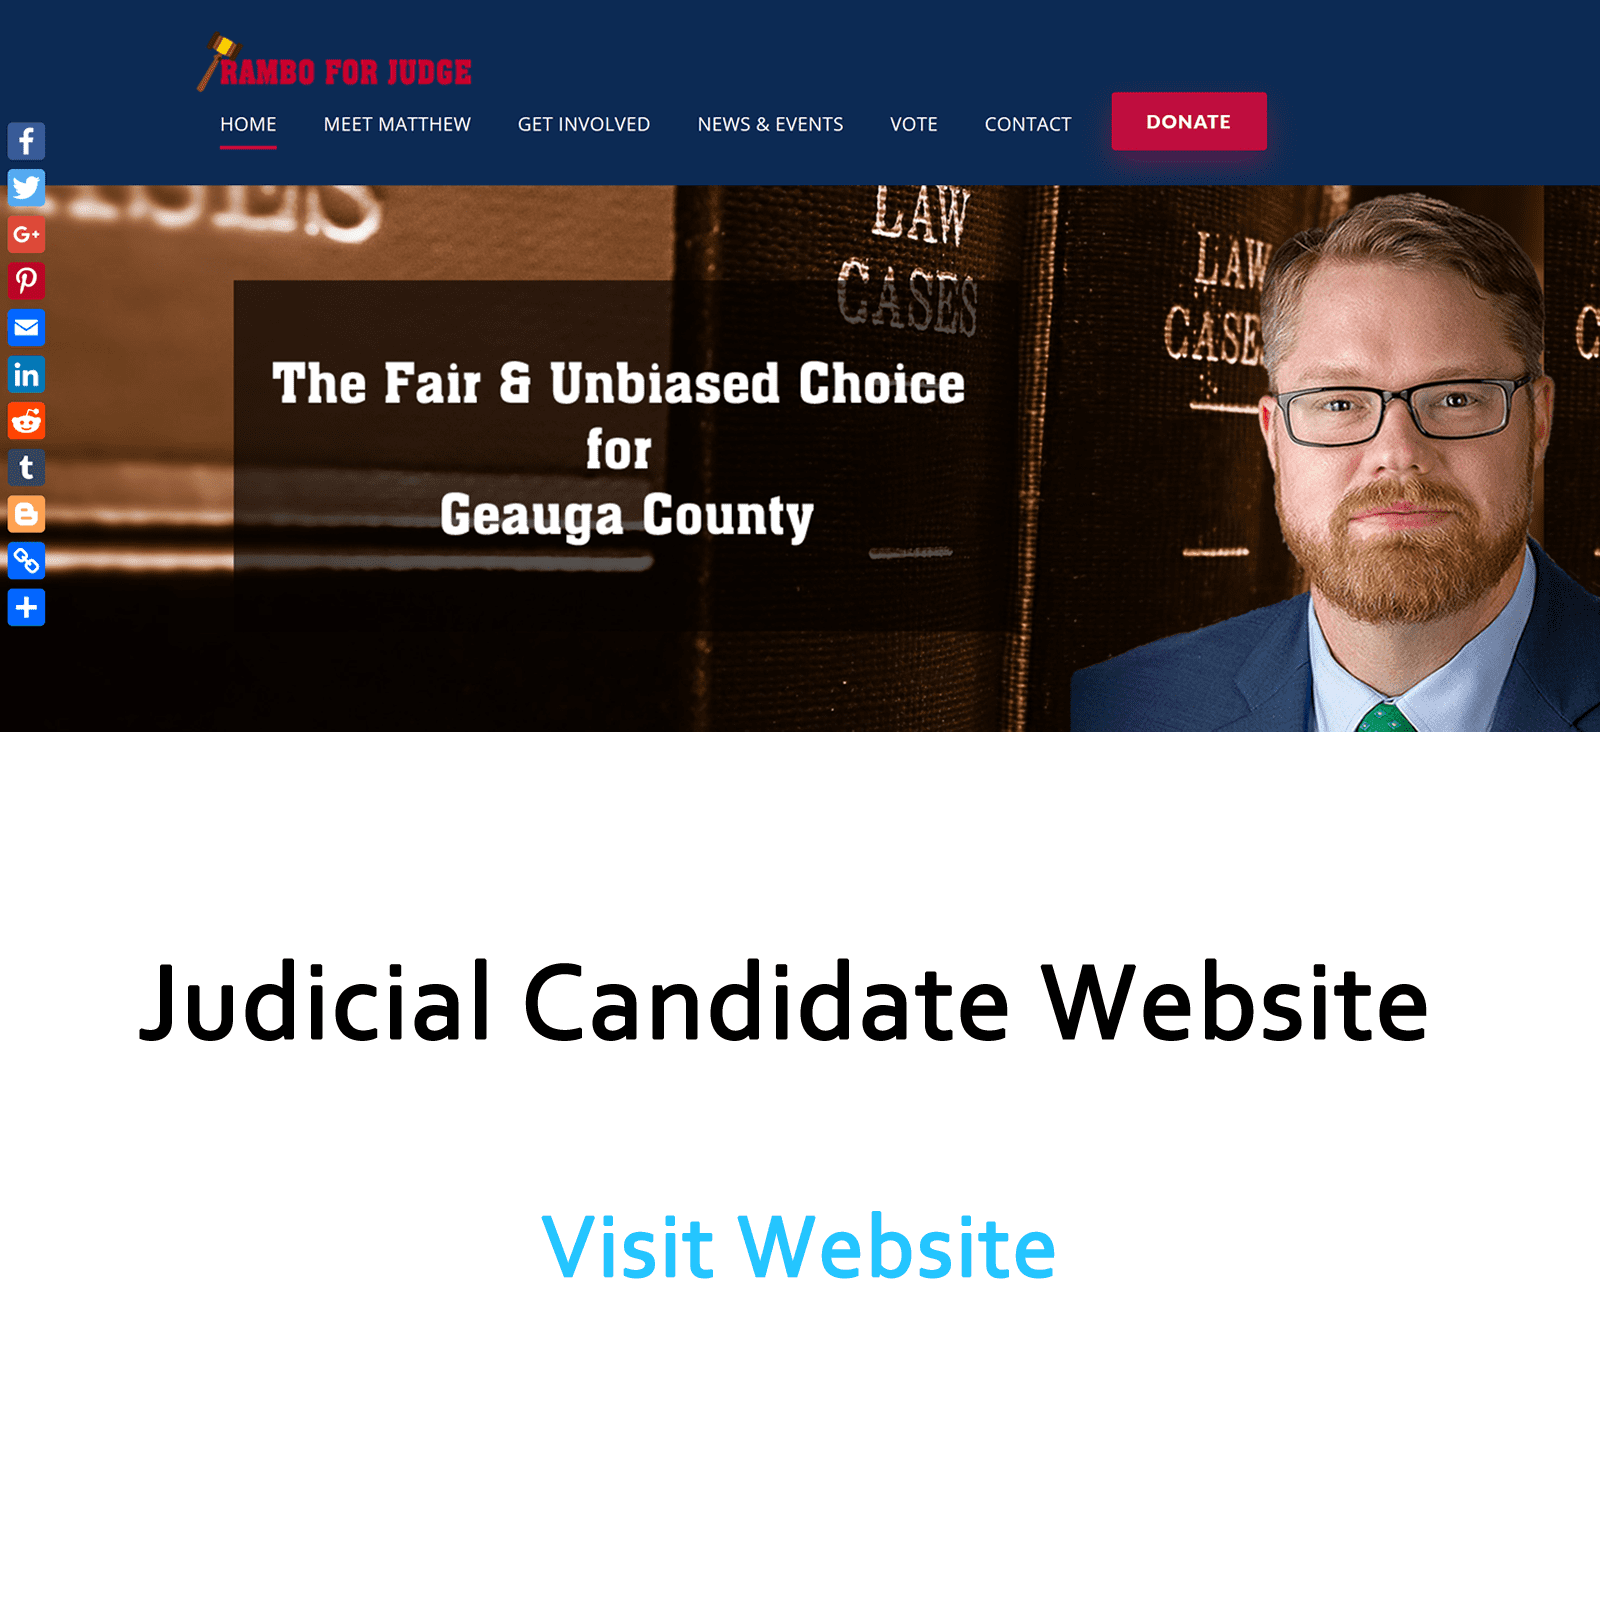 Image of Judicial Candidate Rambo website